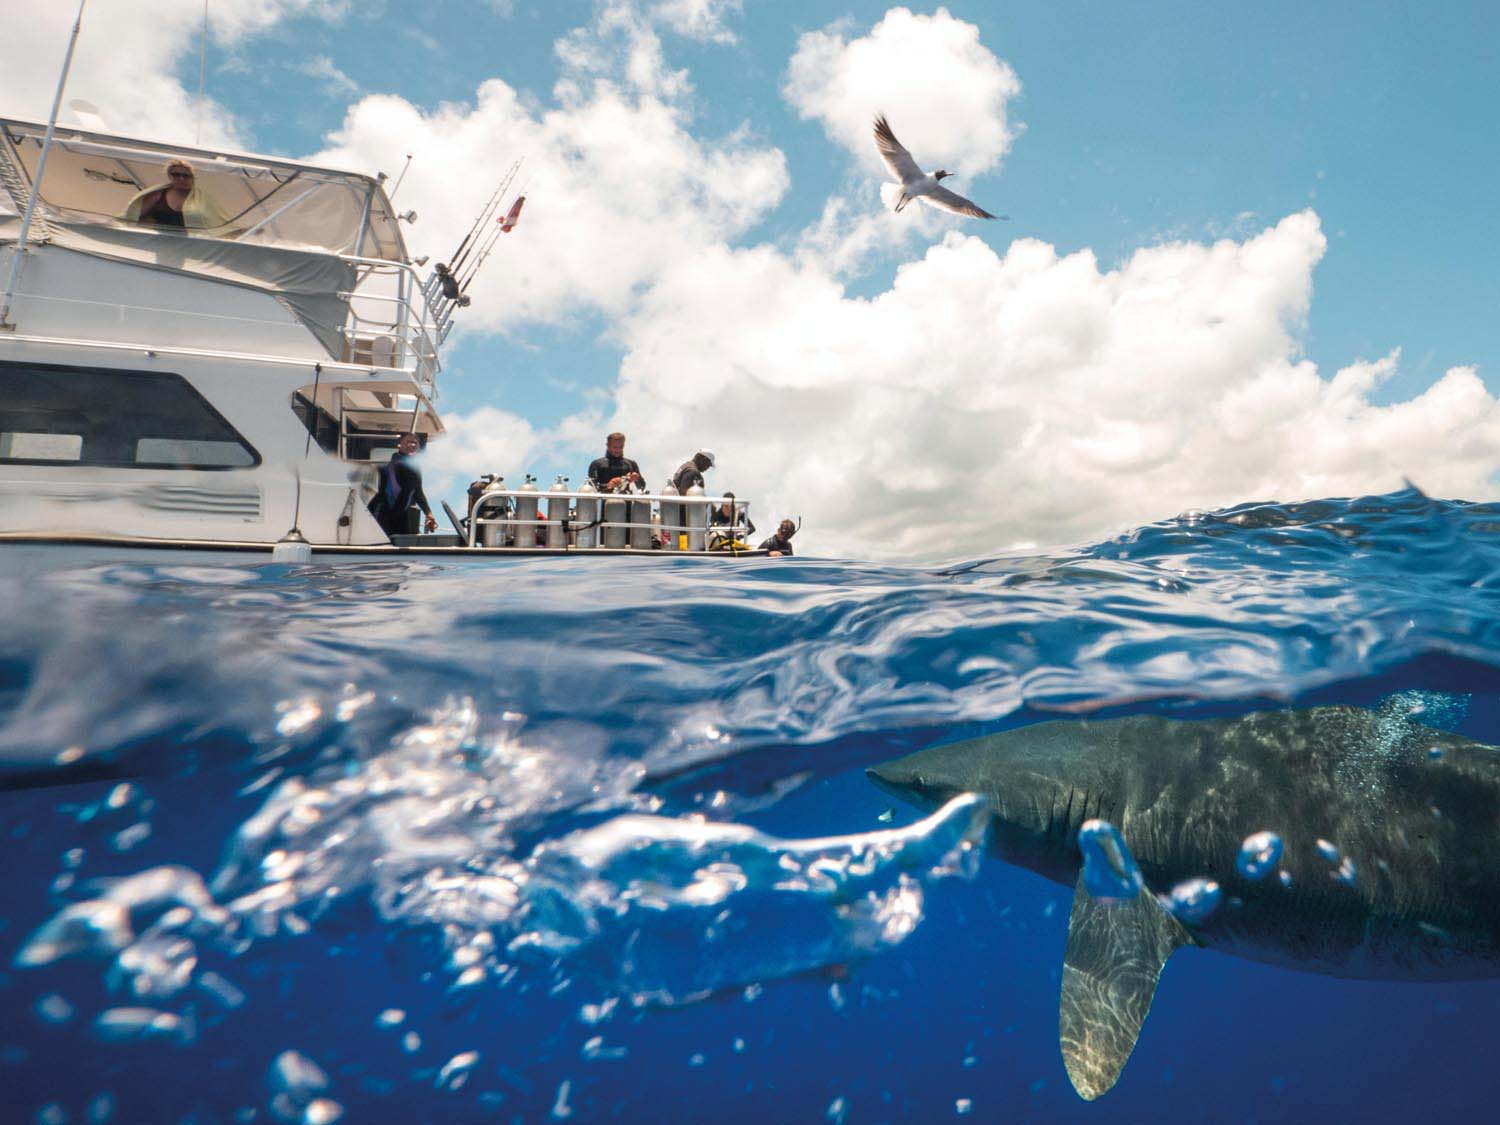 Near the centre of the Bahamas archipelago, Cat Island boasts the country's highest point, Mount Alvernia, all of 207 feet above sea level — and is one of the best places in the world to experience a close encounter with the rare Oceanic Whitetip Shark, via a dive tour. Photo by Christopher Parsons/Alamy Stock Photo